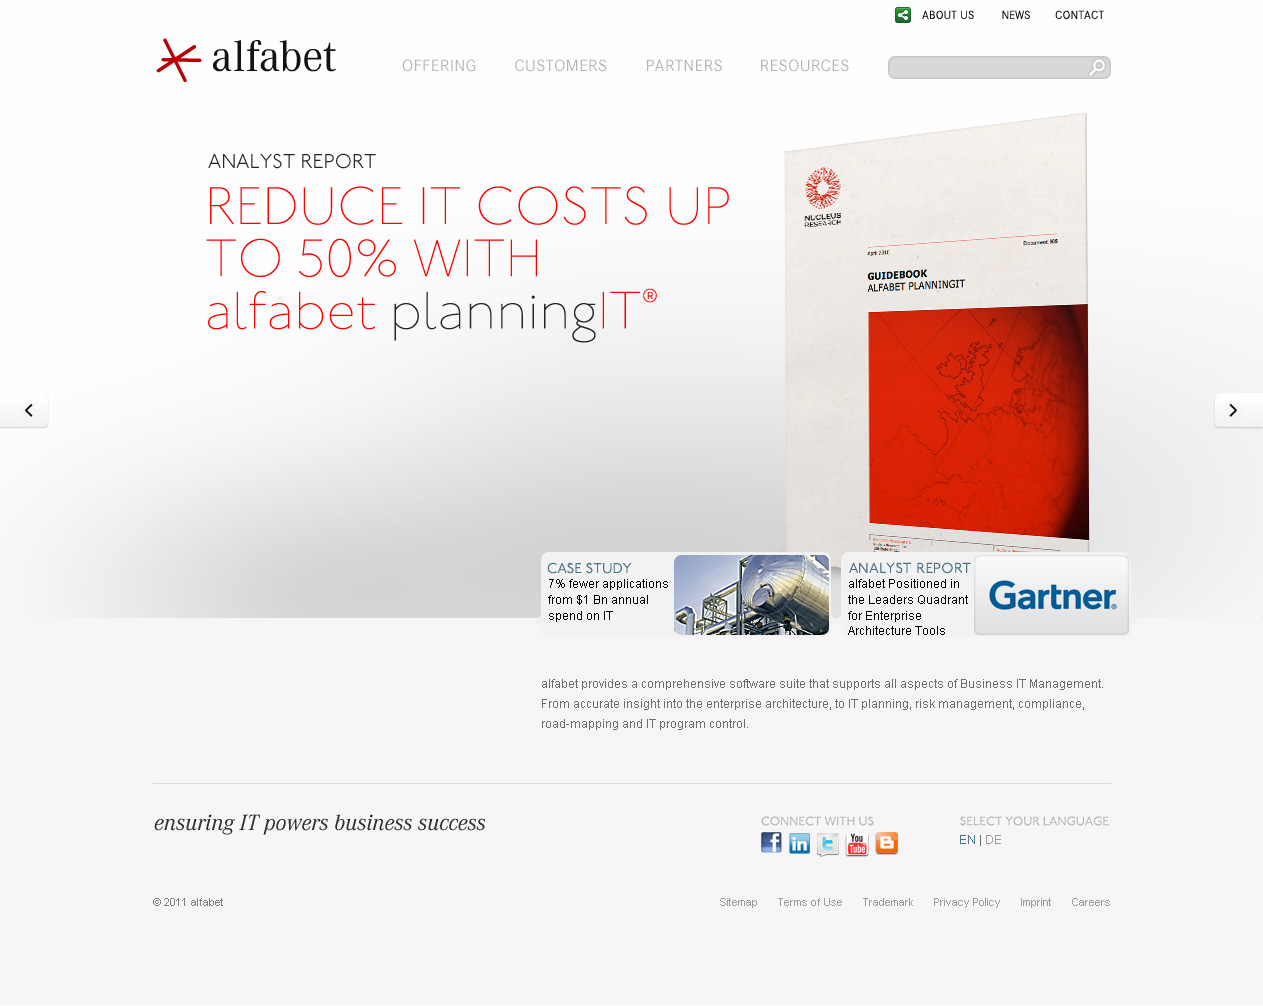 Preview image for alfabet.com